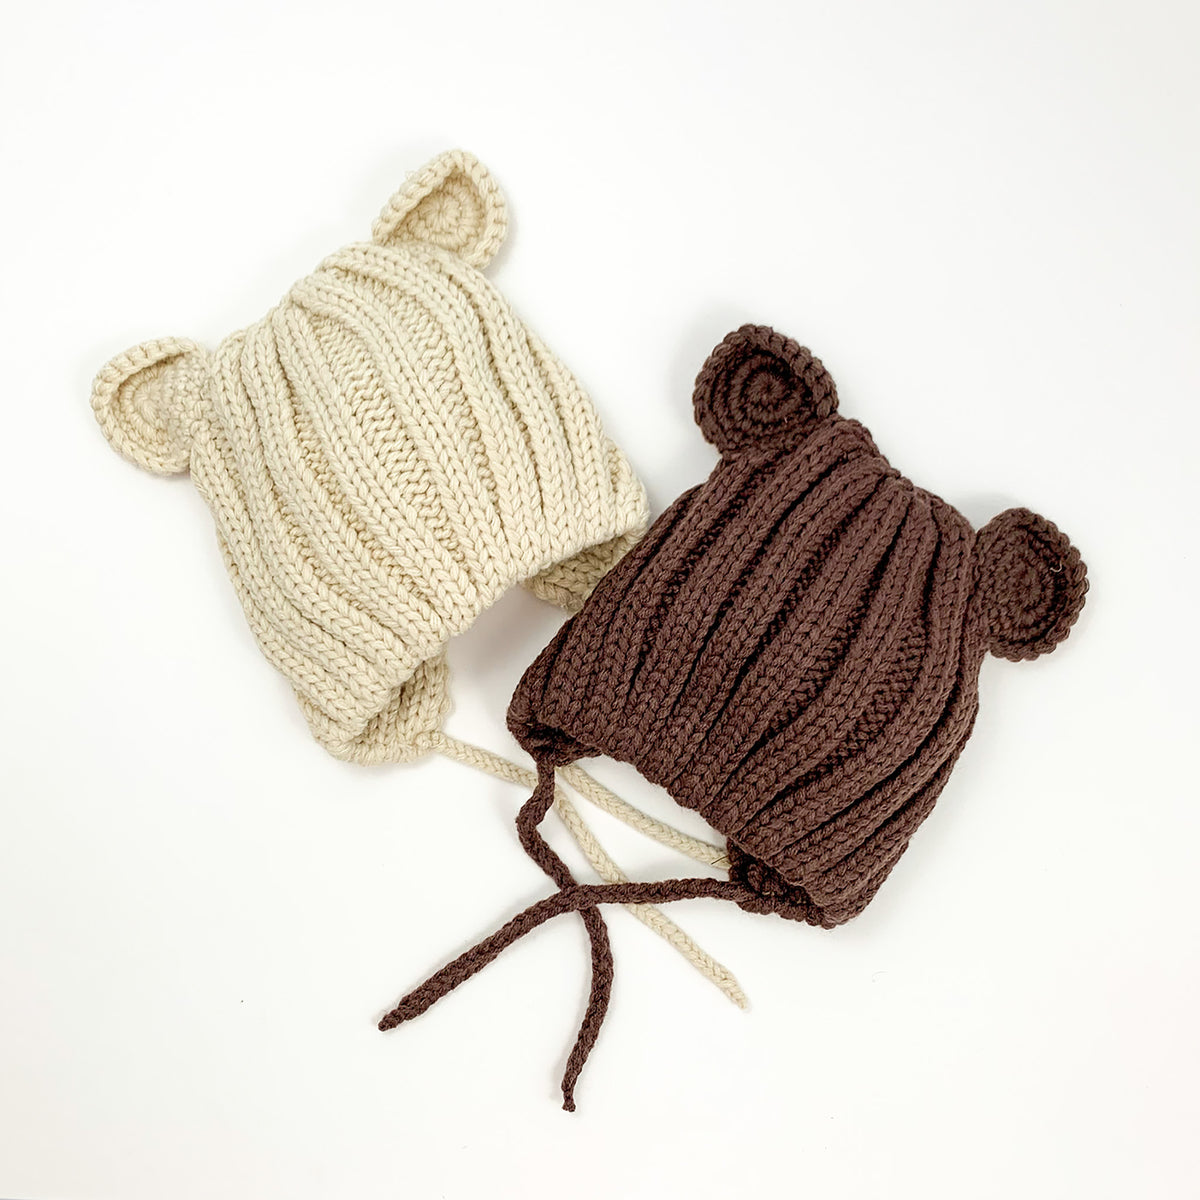 Toddler baby bear hat, chunky knitted style to keep those little heads and ears warm